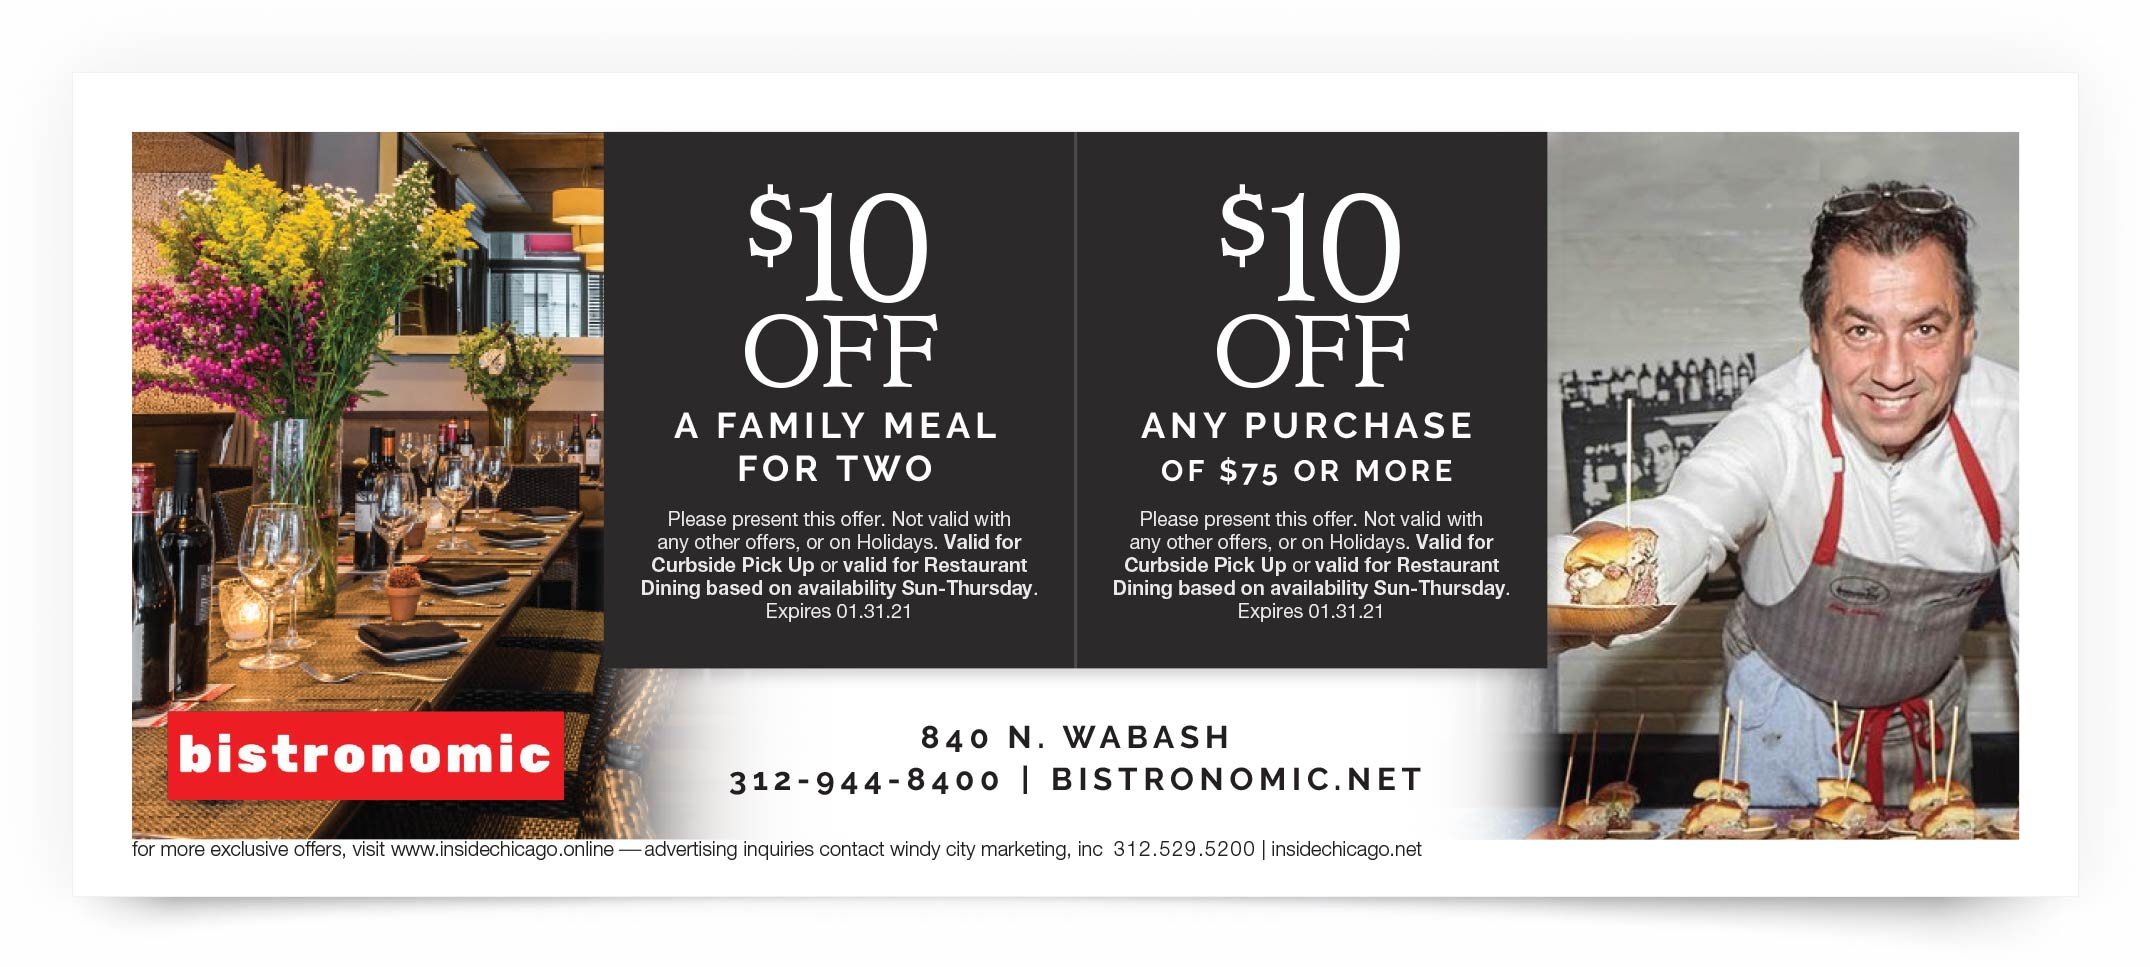 Bistronomic Chicago Coupon Offer